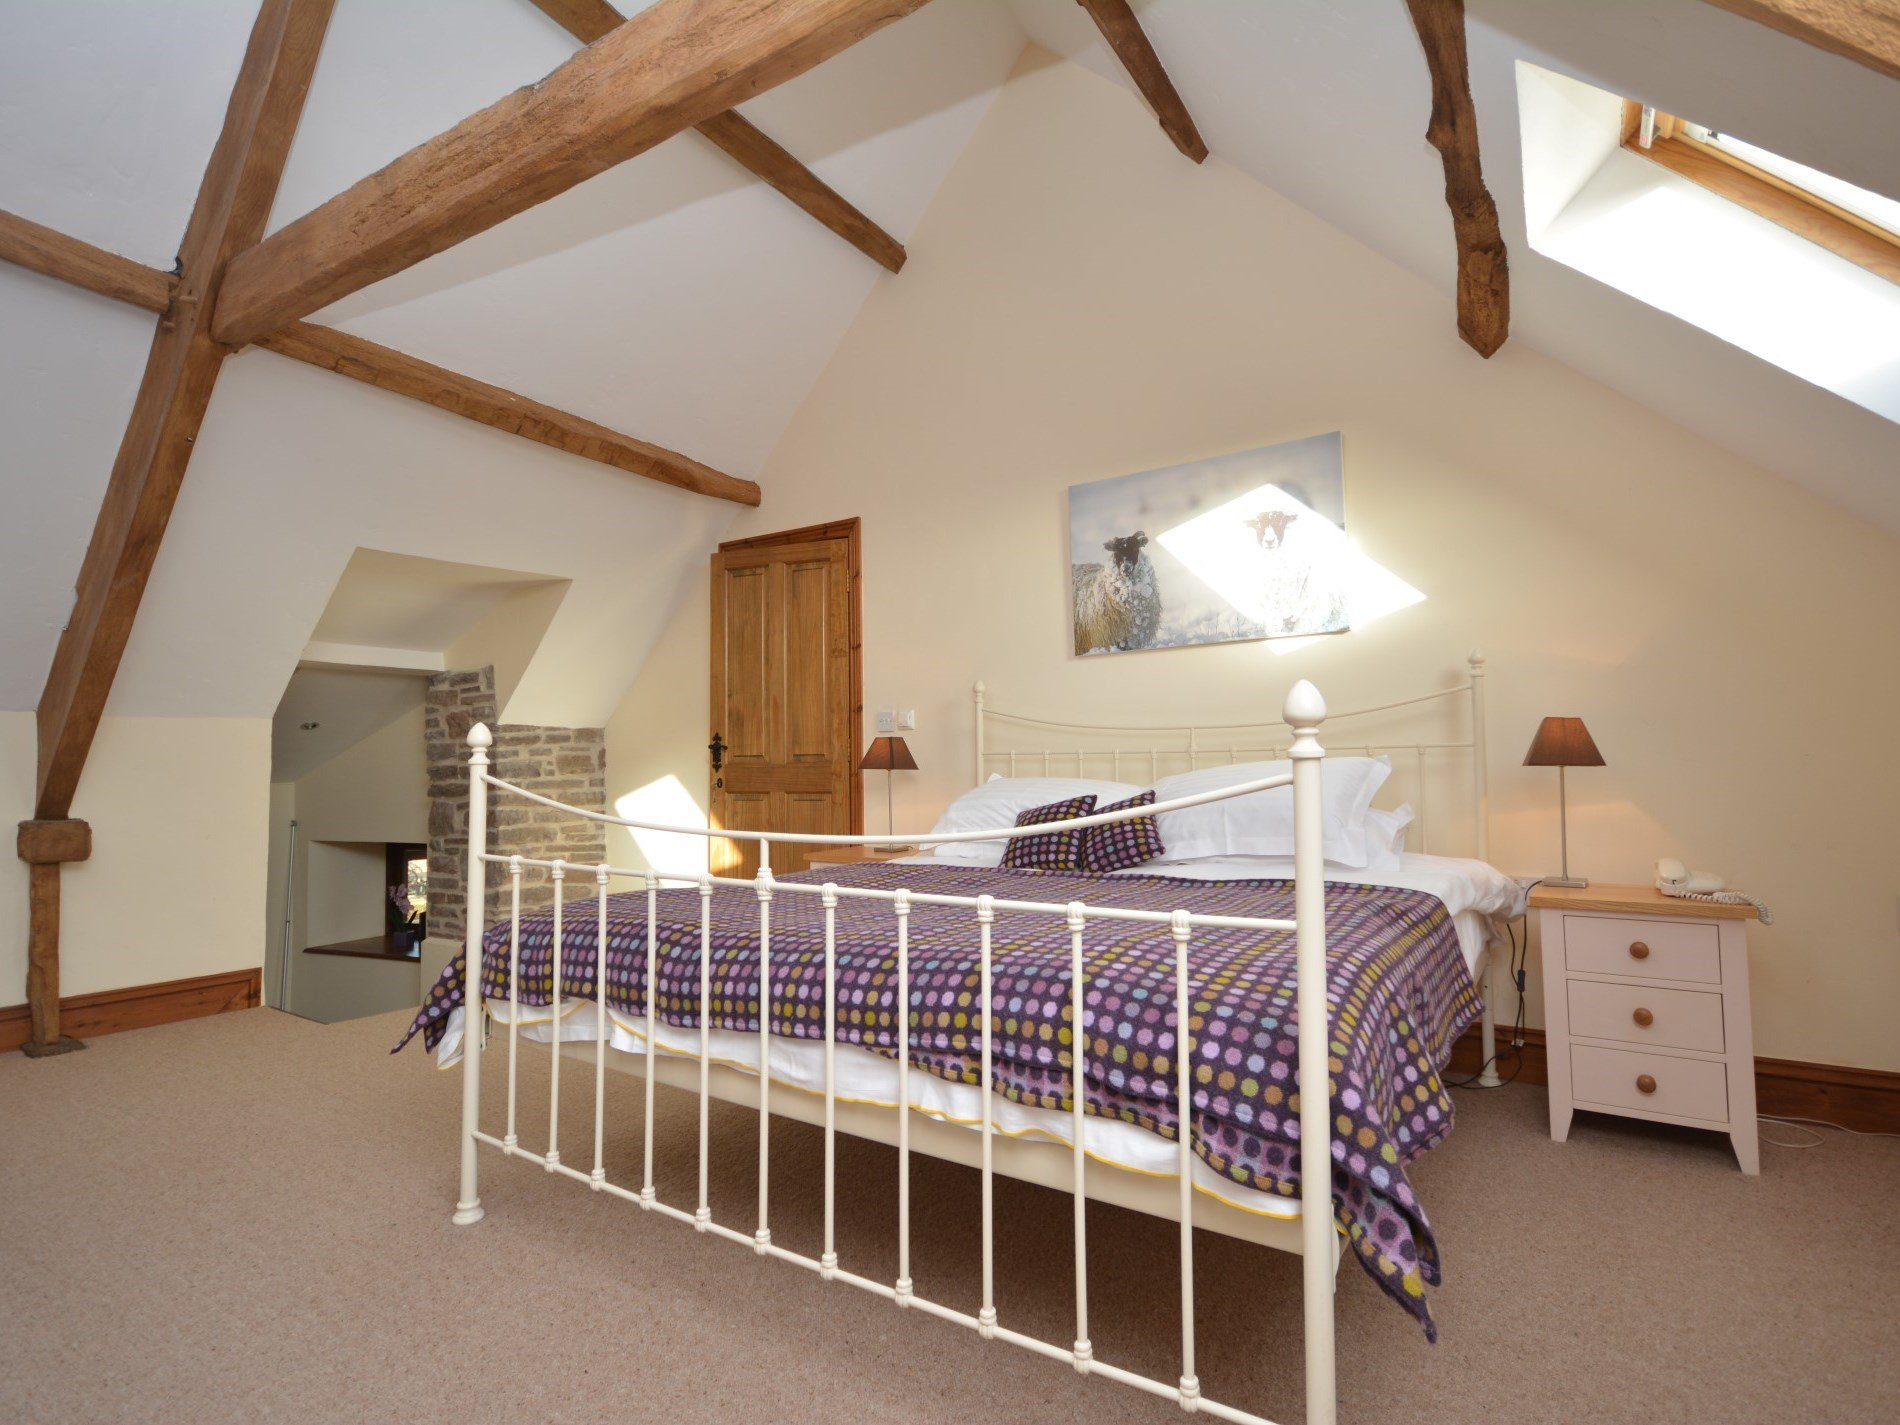 6 Bedroom Cottage in Abergavenny, Mid Wales